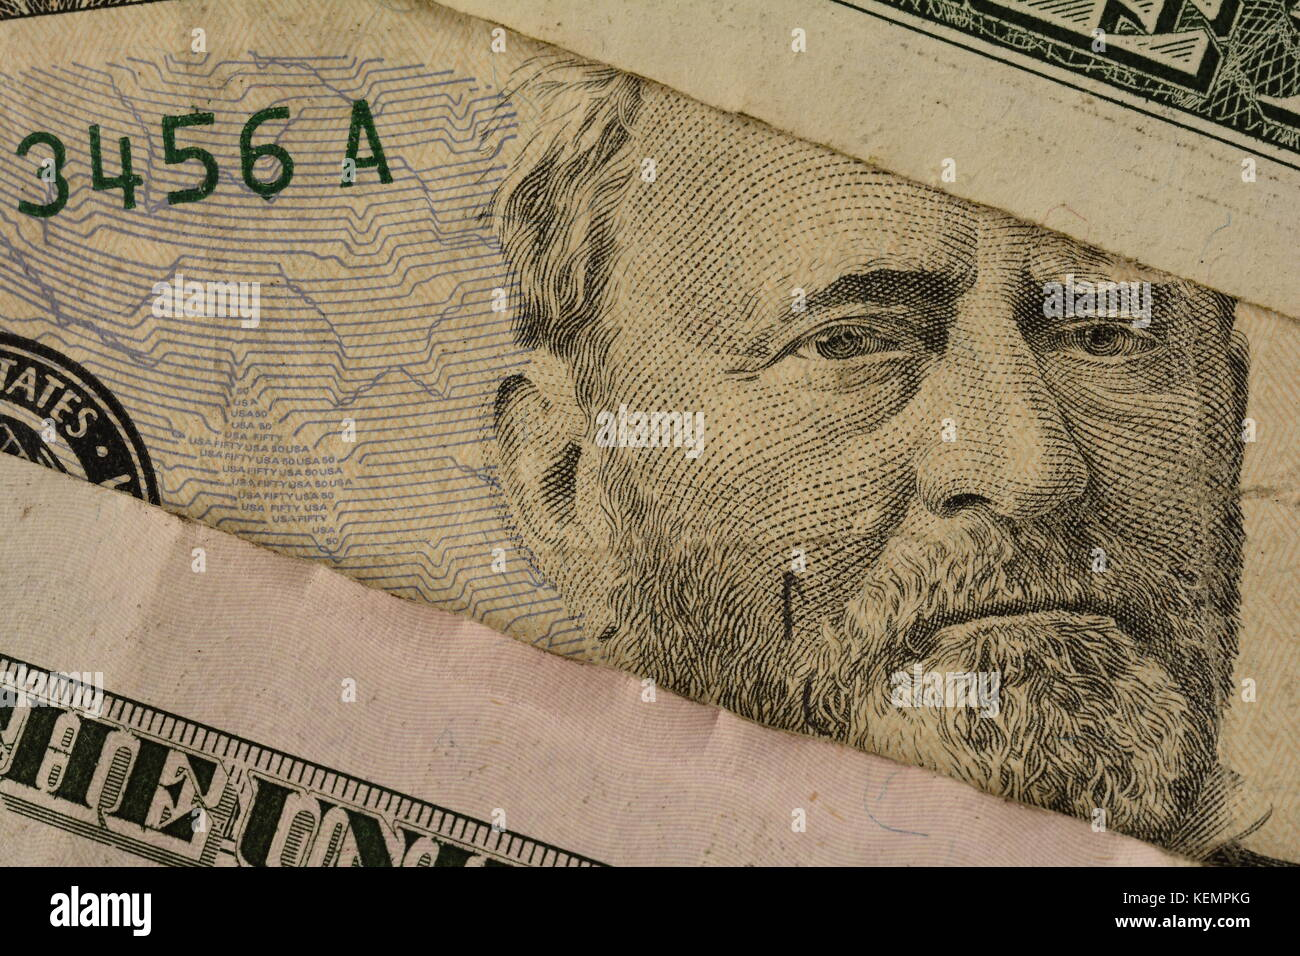 which president is on the fifty dollar bill